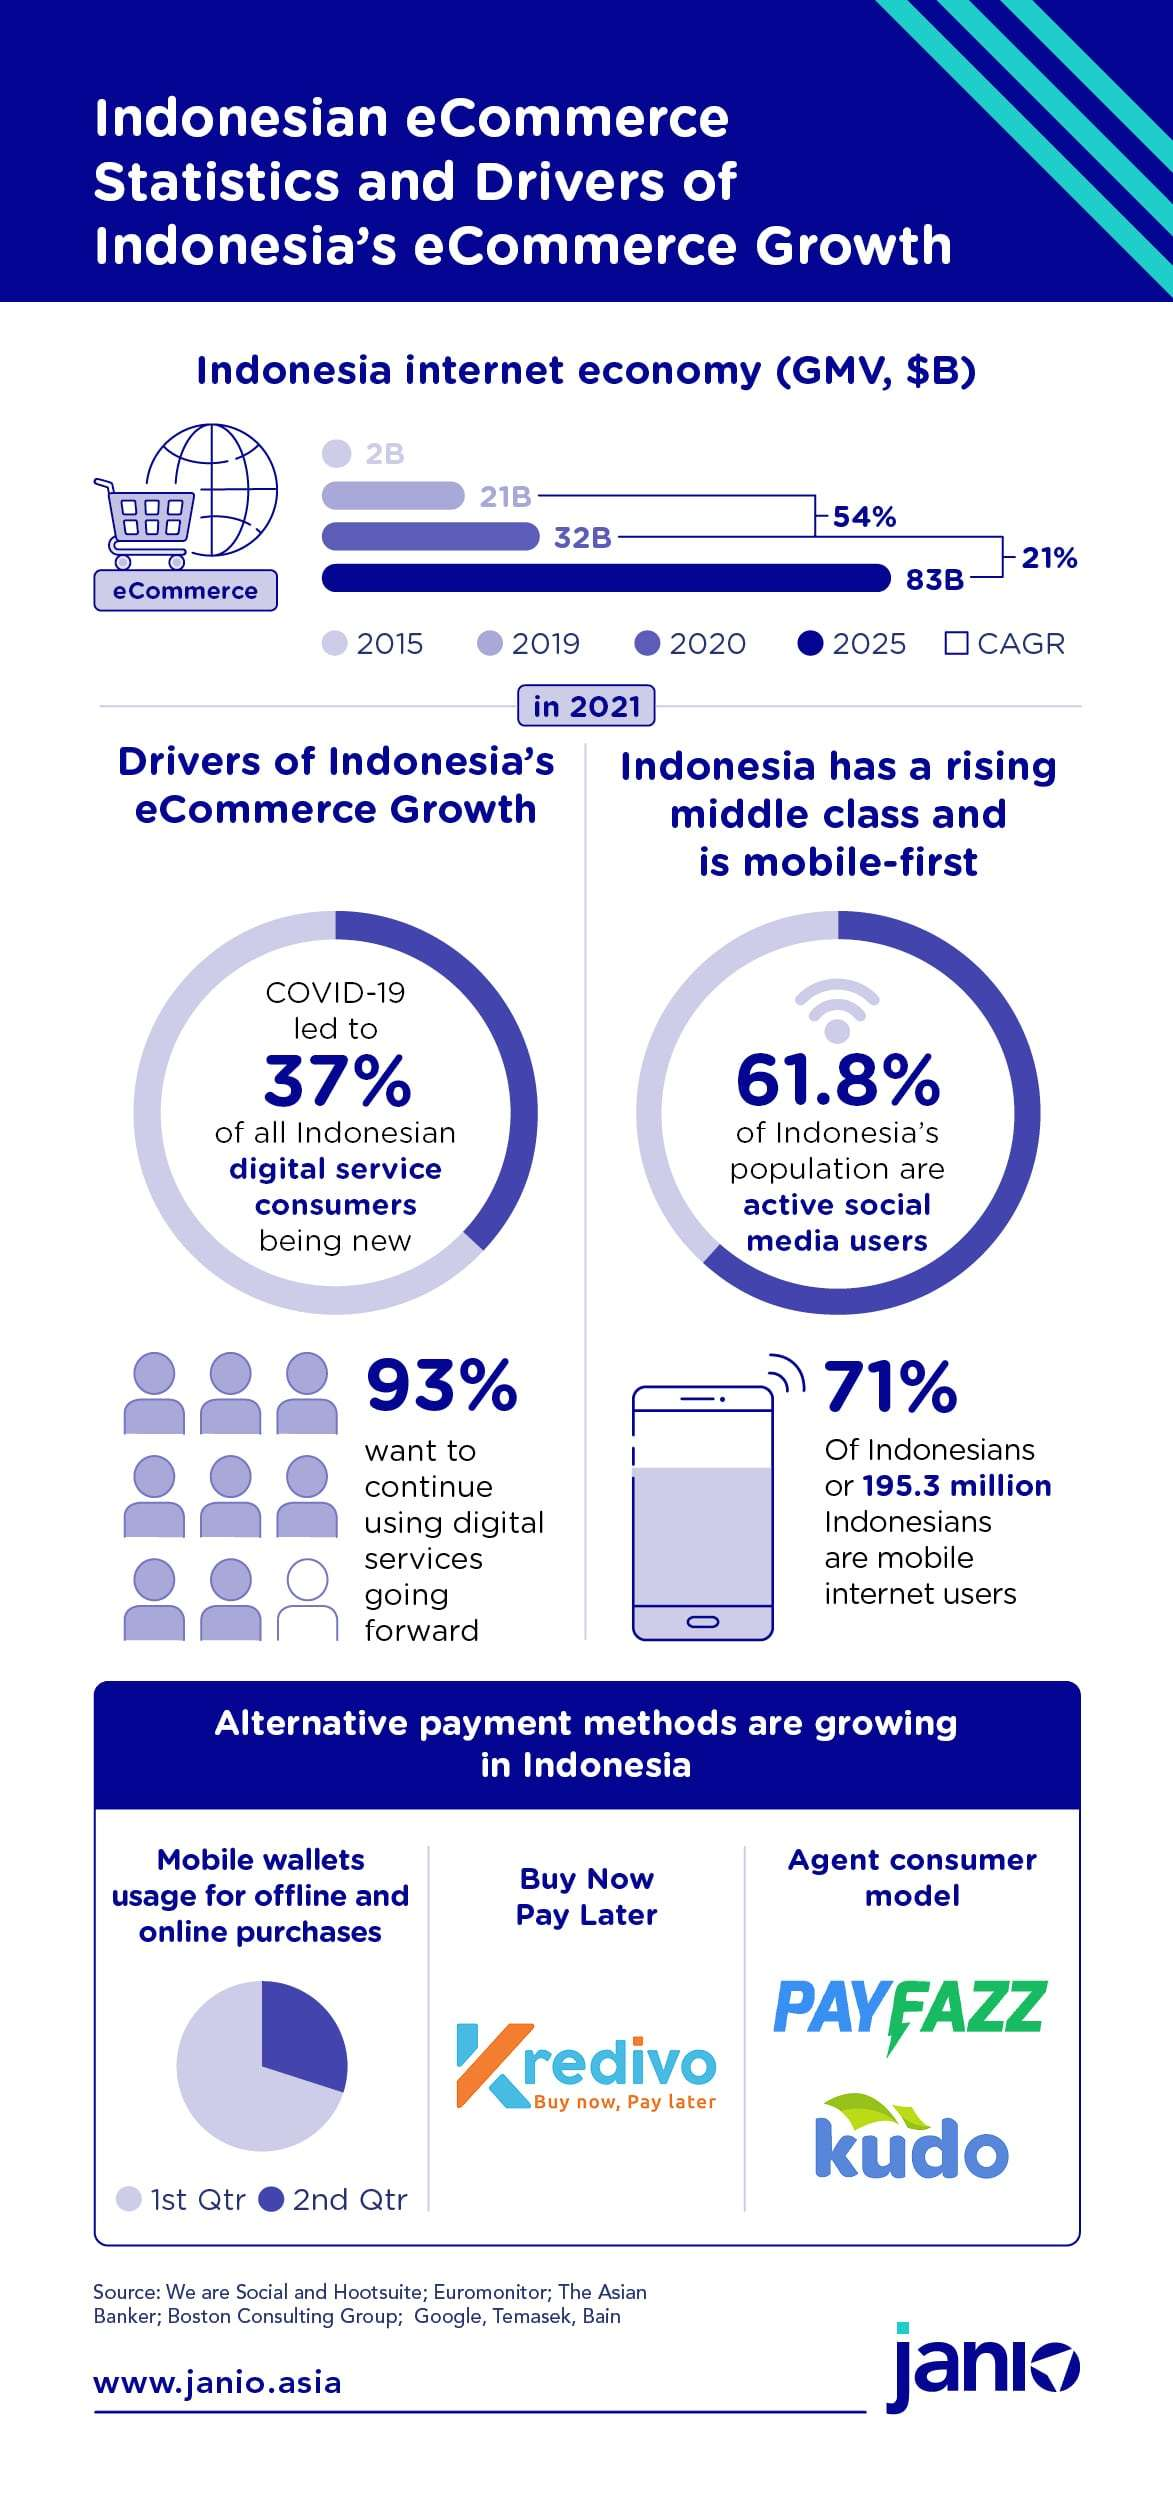 Infographic showing Indonesian eCommerce statistics and drivers of Indonesia's eCommerce growth - large middle-class and affluent class, mobile-first economy and new payment methods like e-wallets appearing in Indonesia